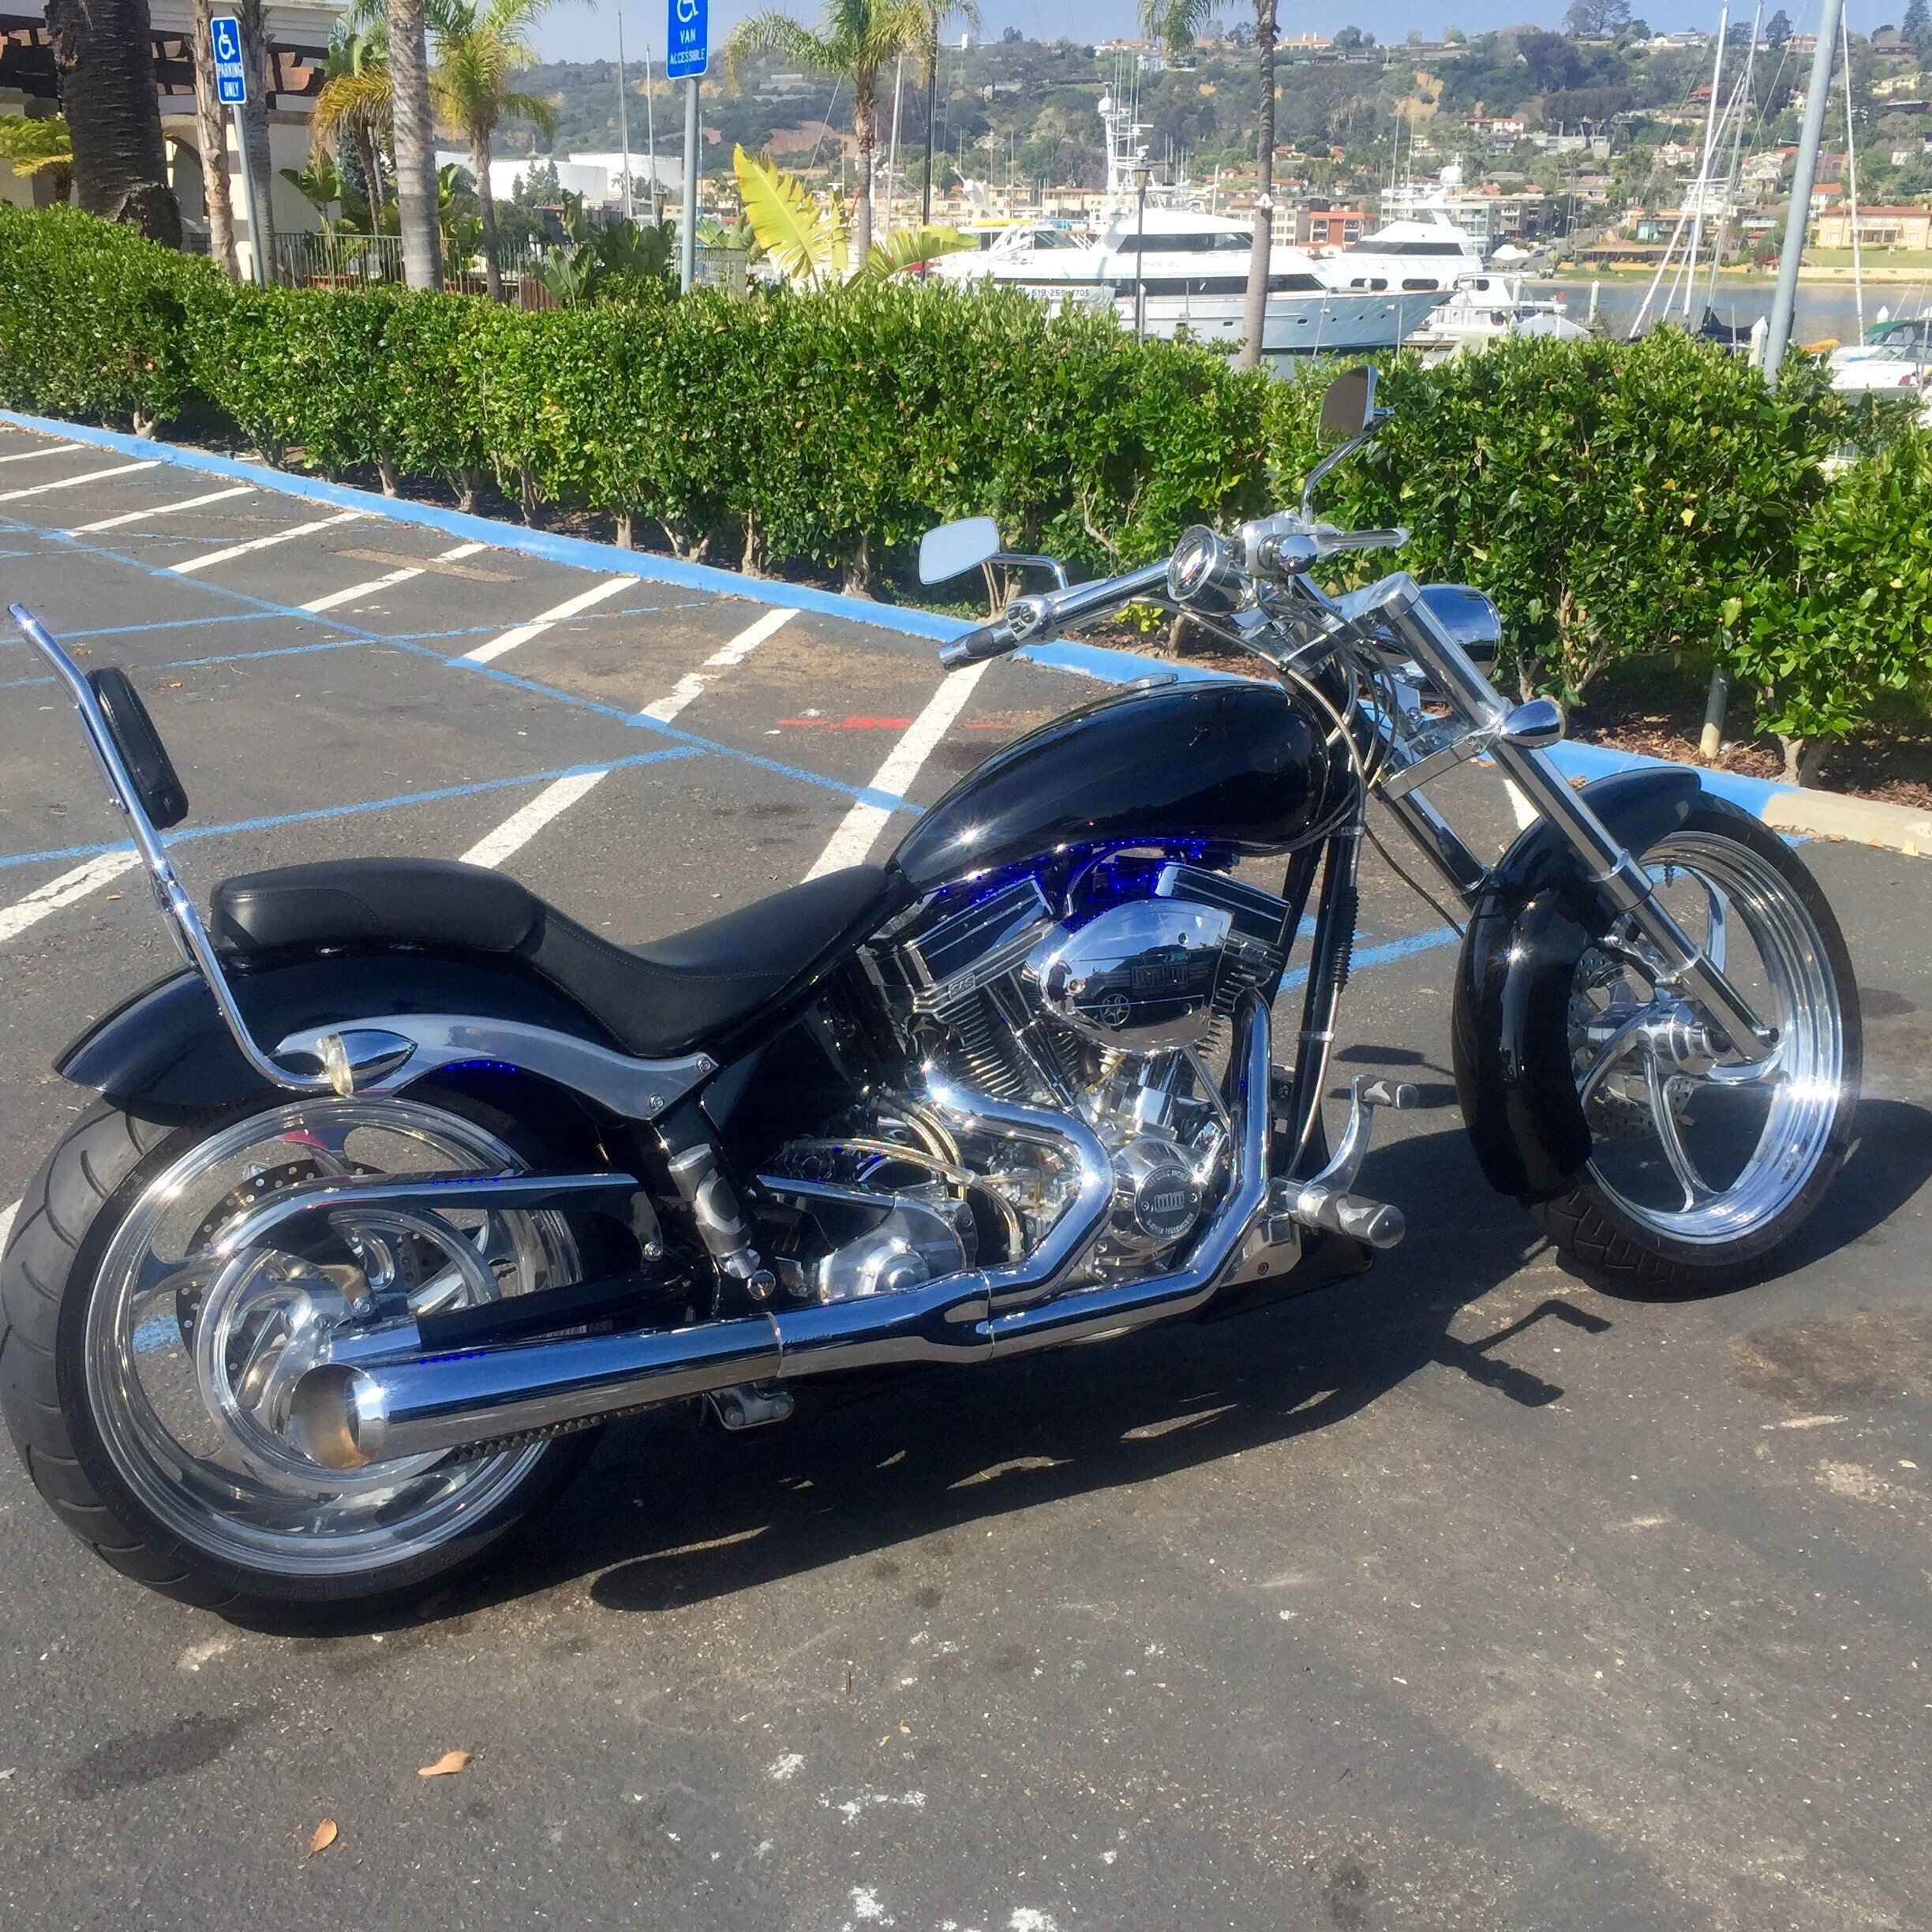 2004 big dog motorcycles pitbull for sale near san diego california rh motorcycles autotrader com 2004 Big Dog Parts 2004 Big Dog Pitbull Specs